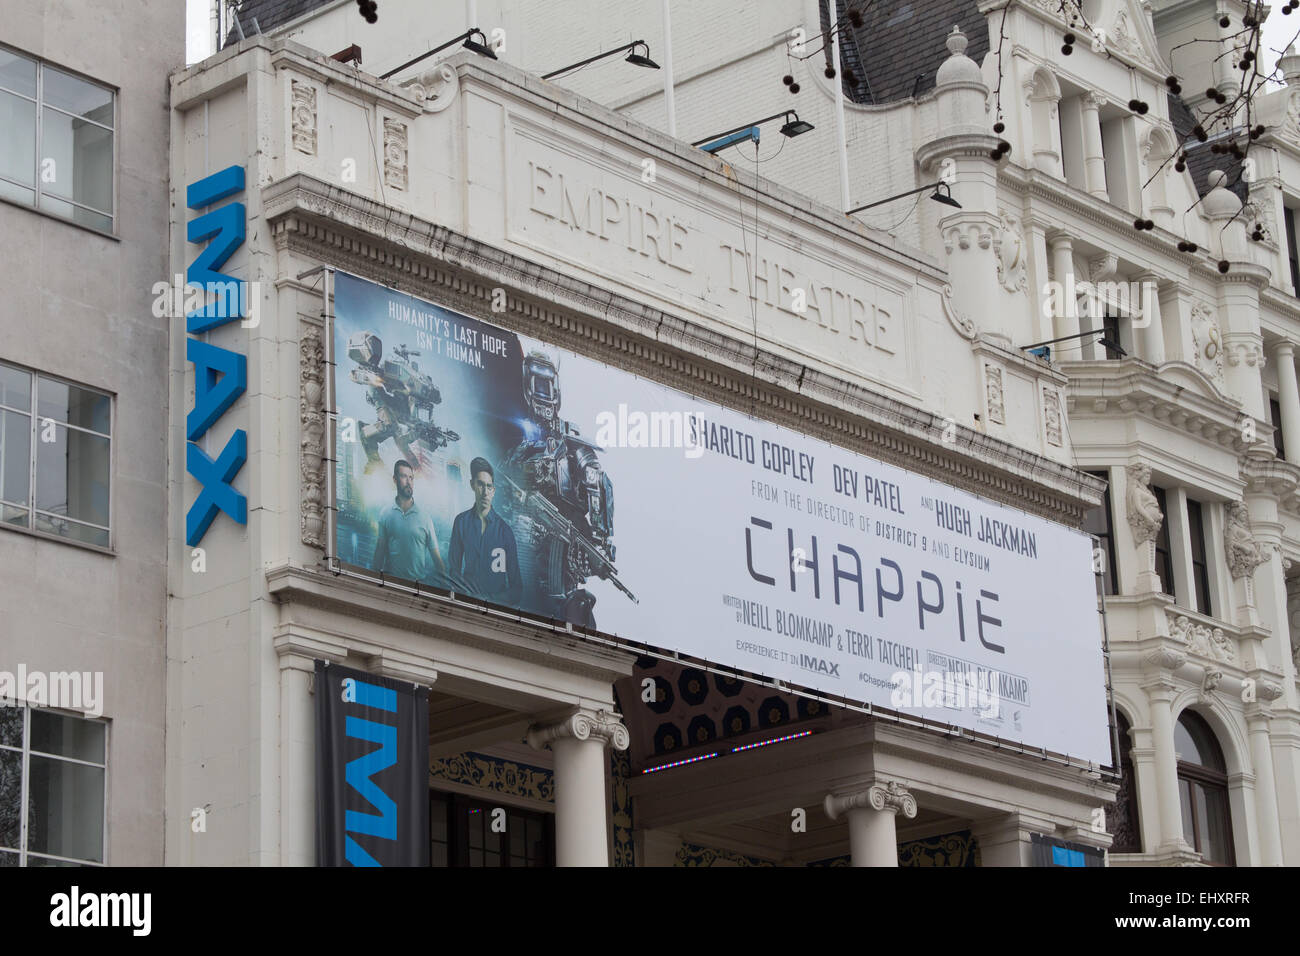 Imax Empire Theatre at Leicester Square London showing Chappie - Stock Image